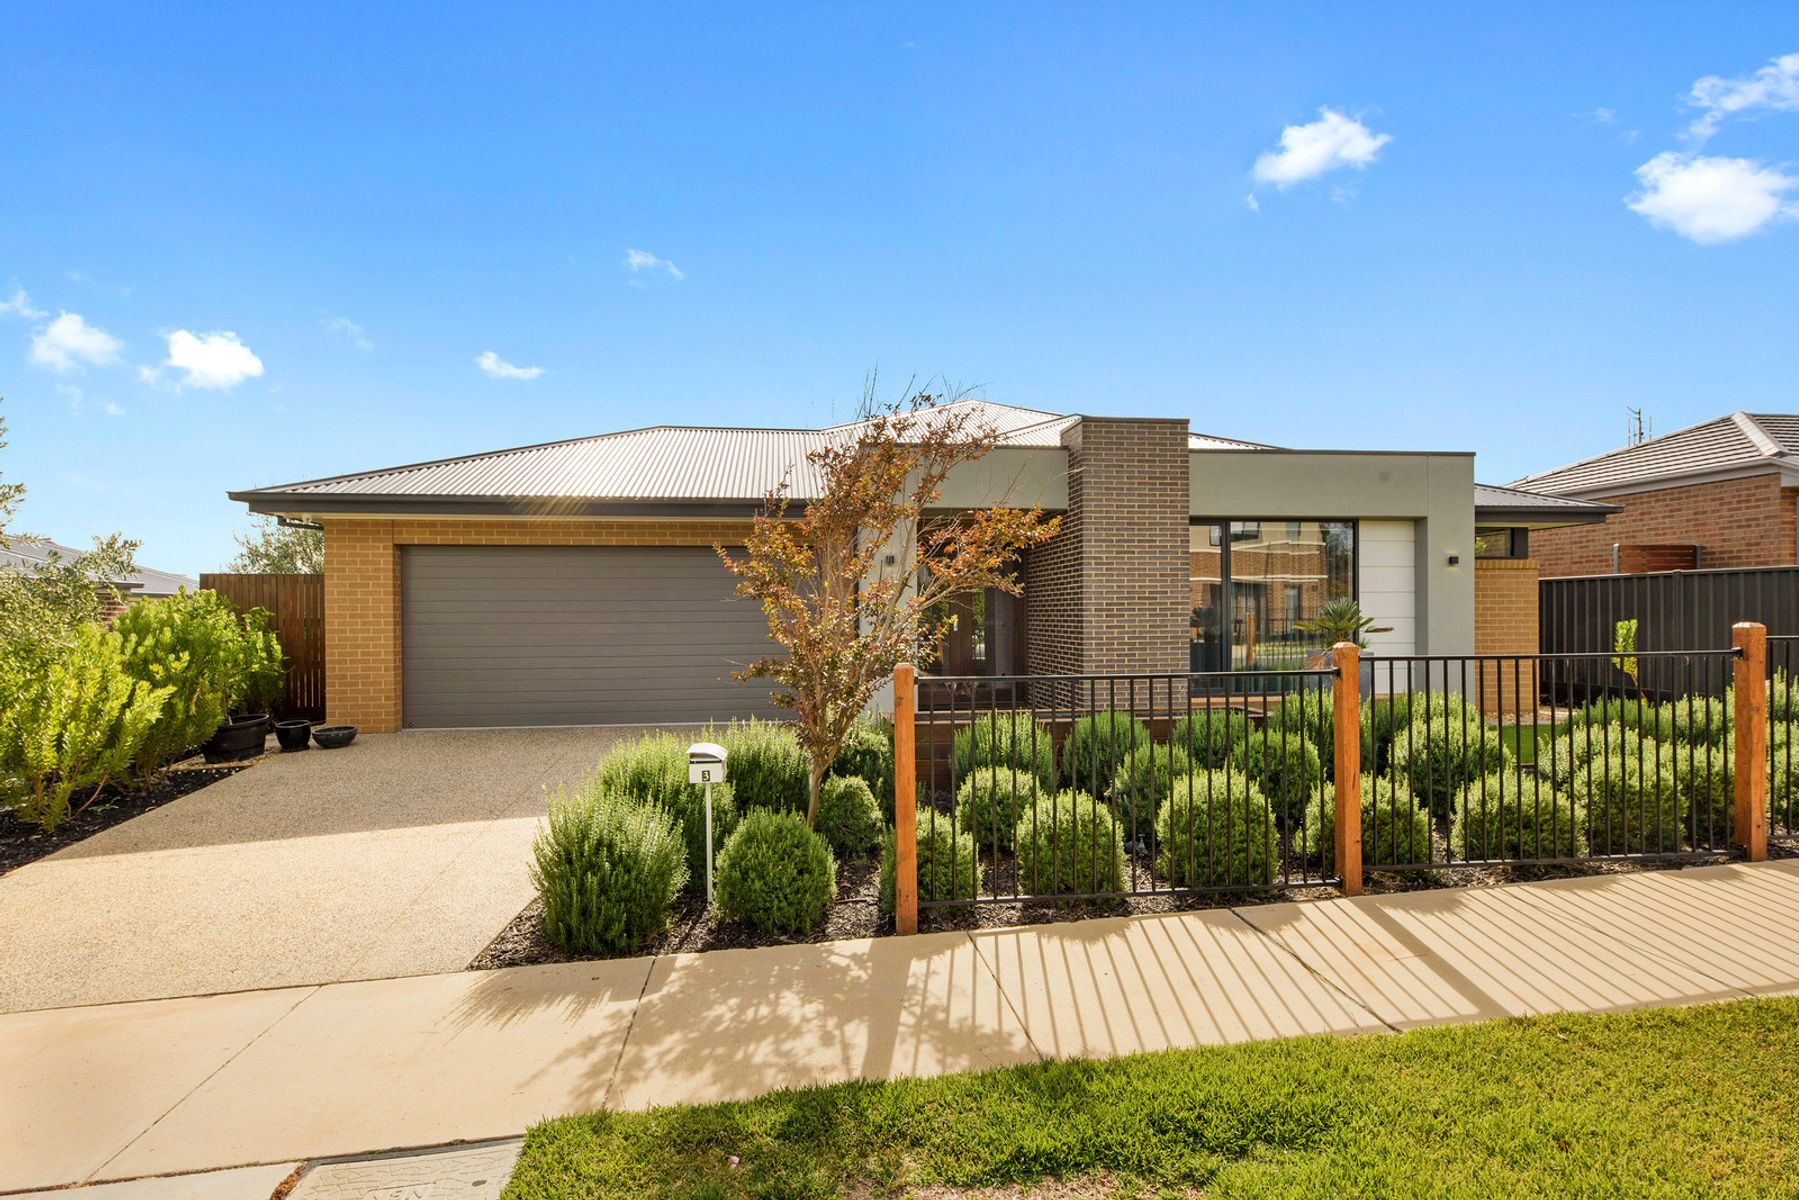 3 Yirrilil Way, Strathfieldsaye, VIC 3551